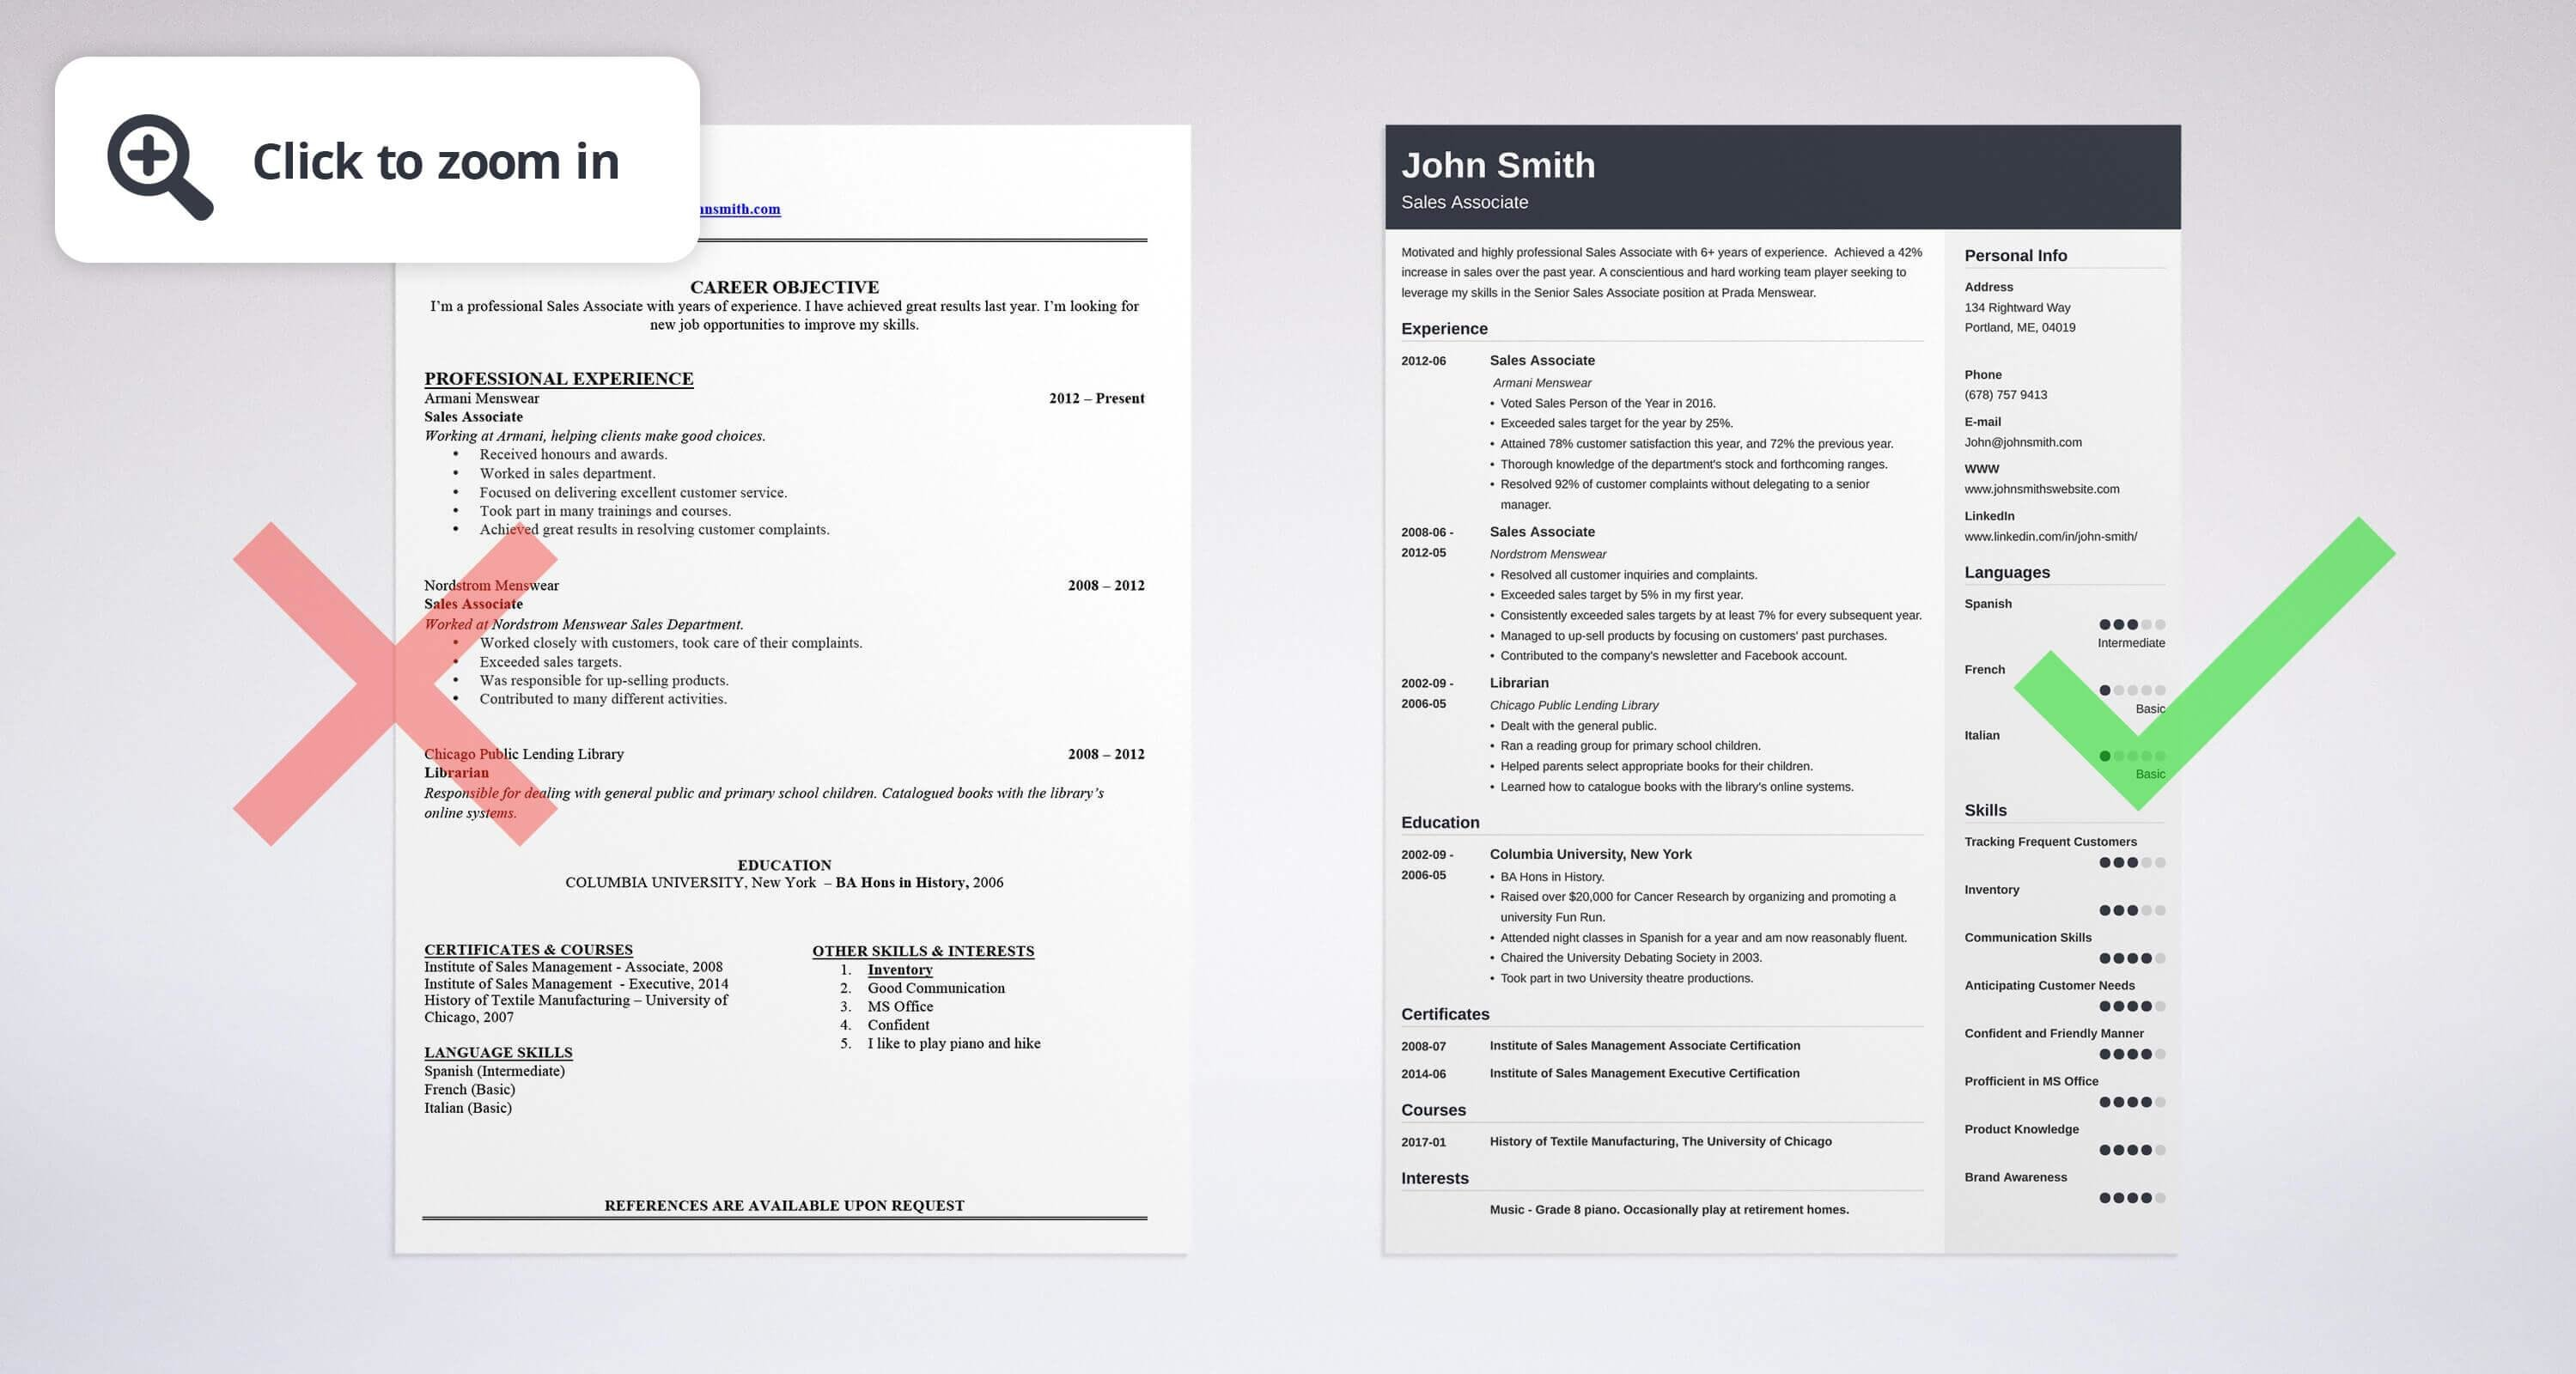 Beautiful Uptowork  Job Resume Skills